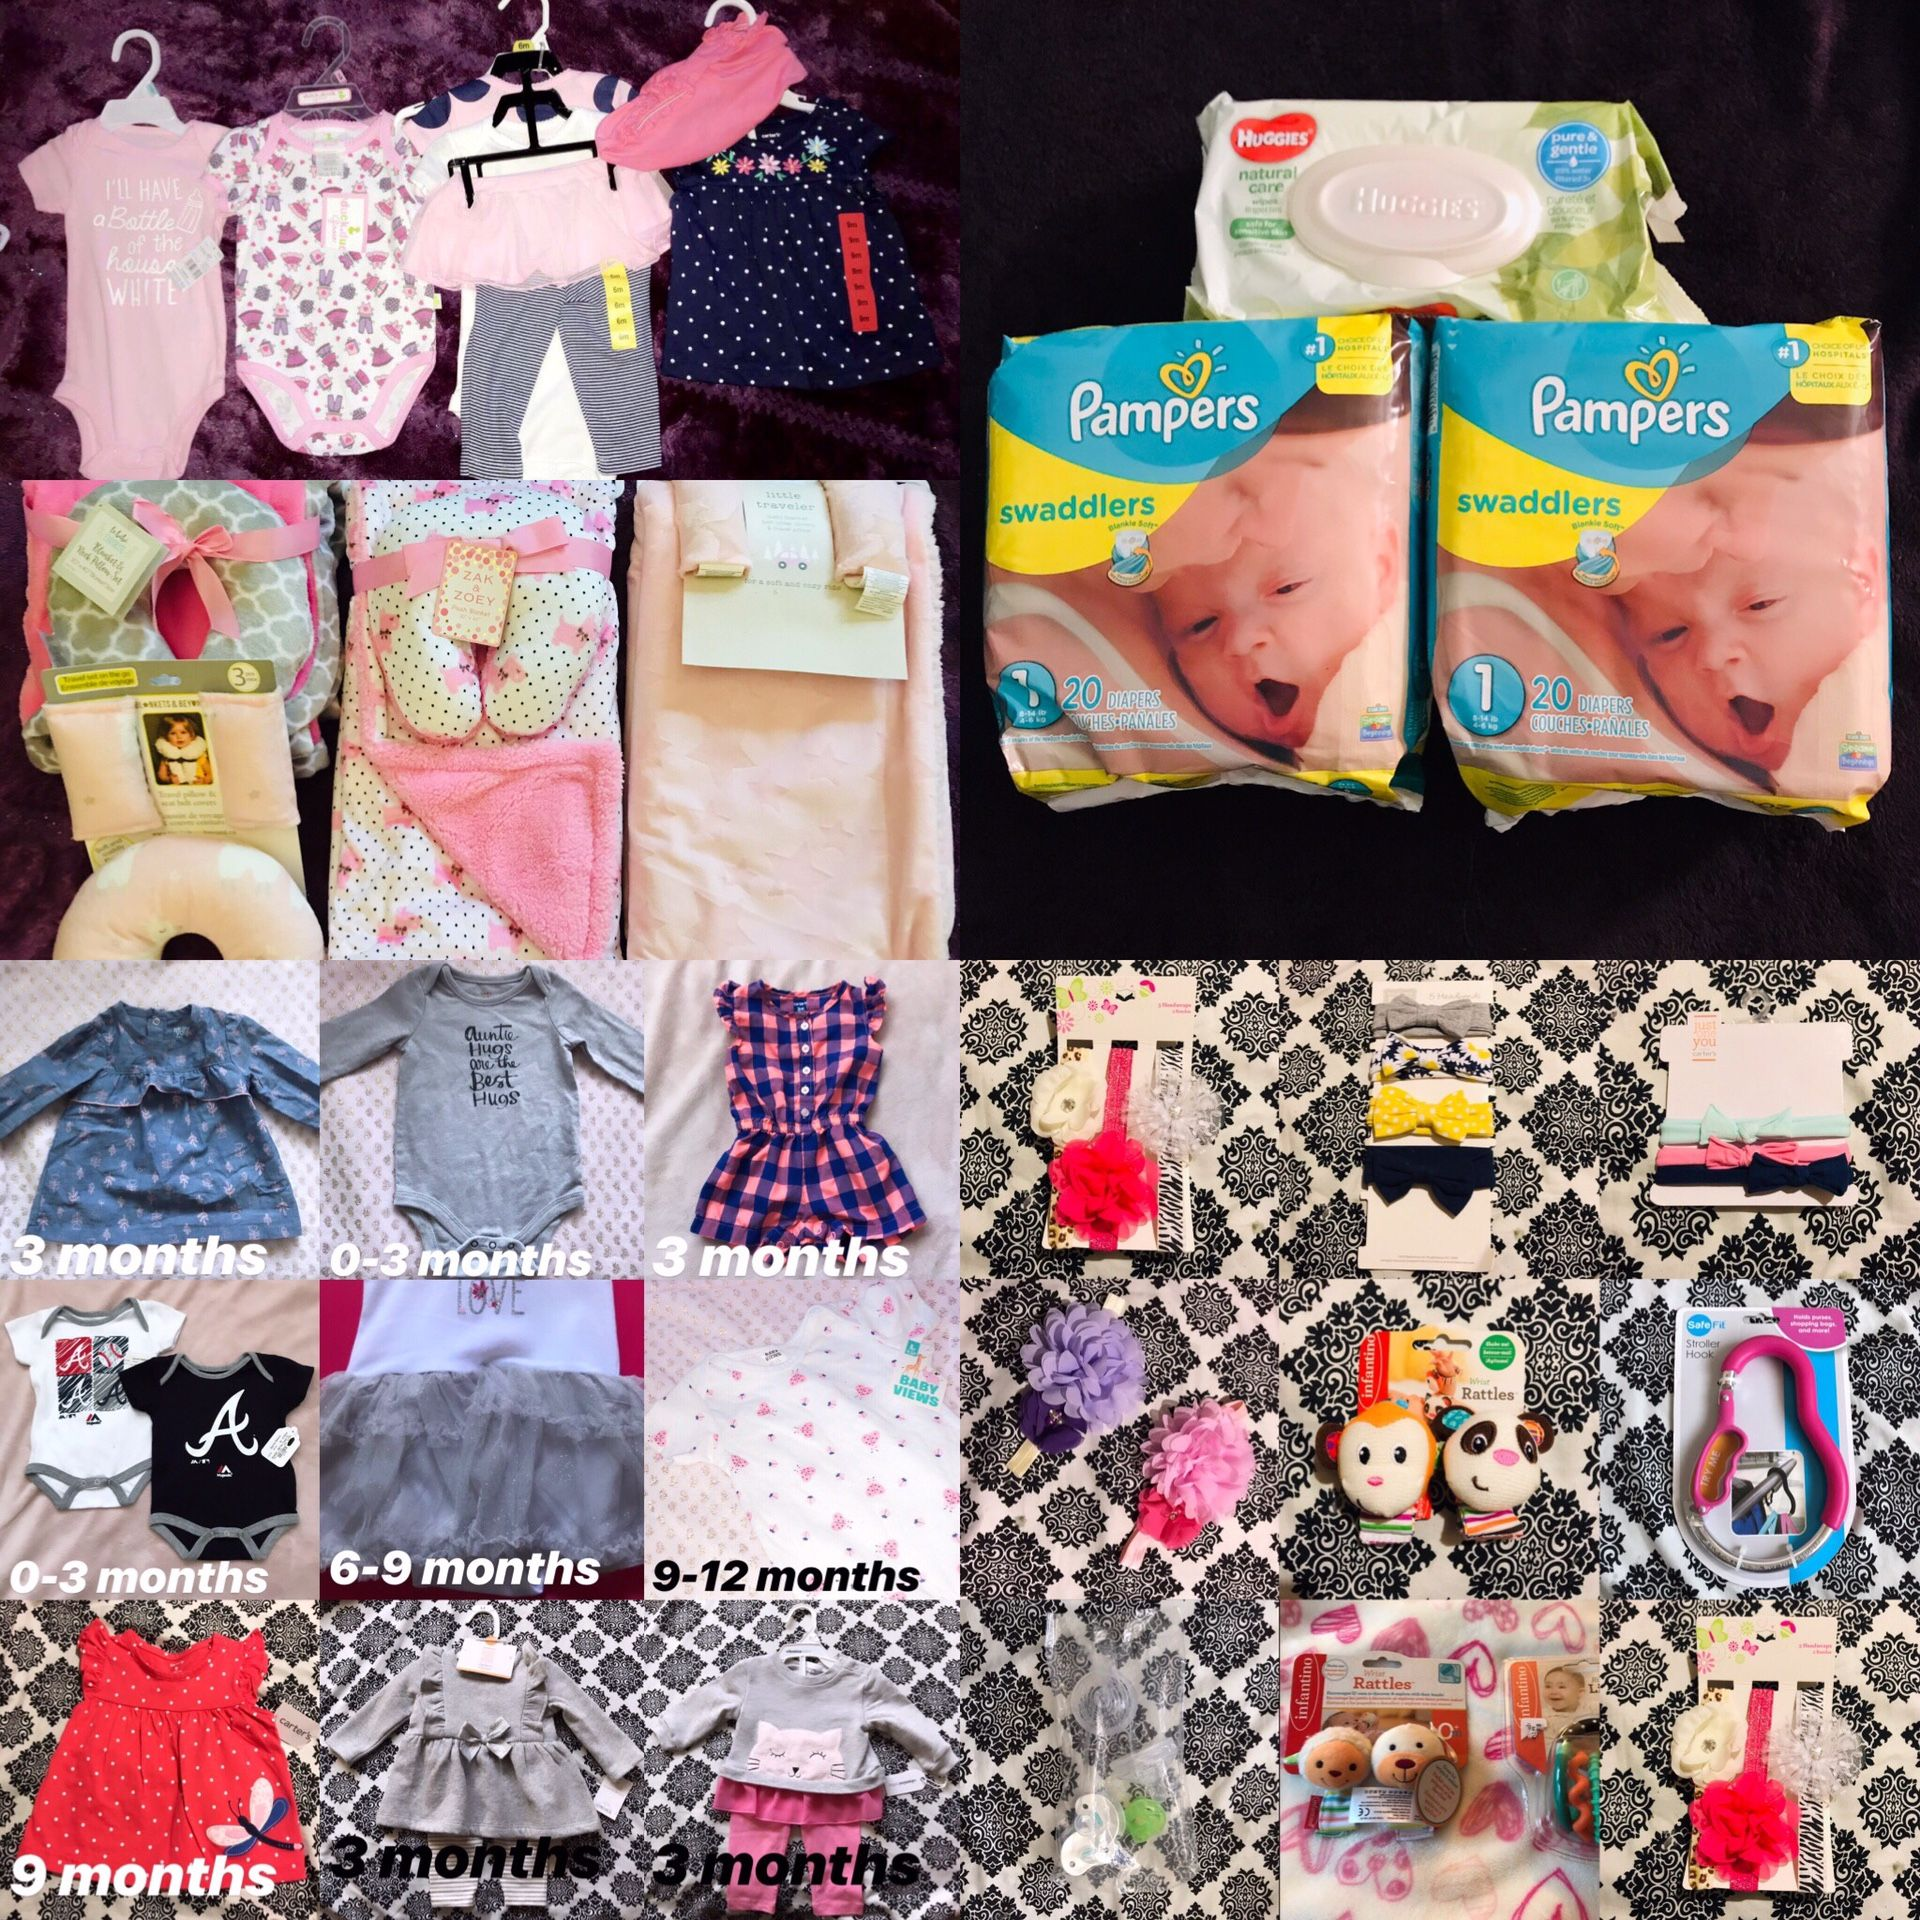 14 new outfits 4 blankets 2 packs of pampers with huggies wipes, bows, toys, and pacifiers